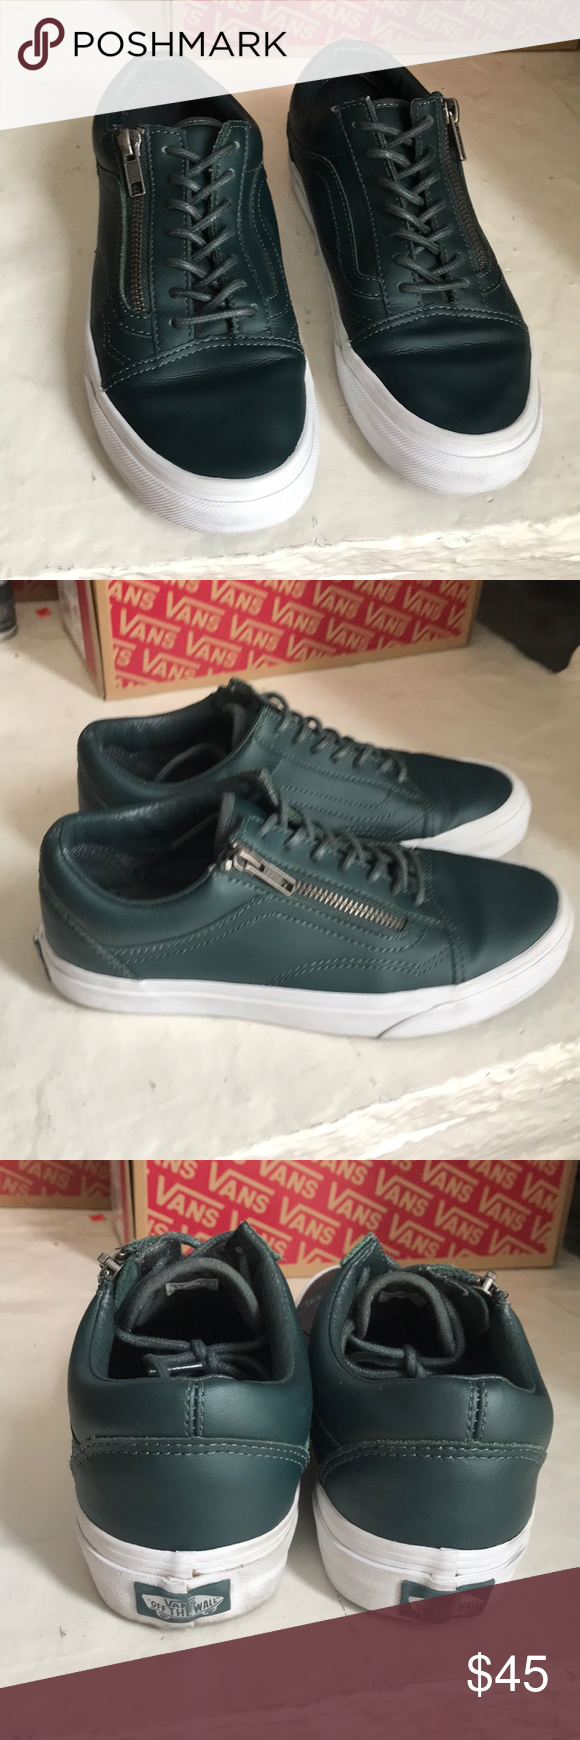 766028258a4a VANS OLD SKOOL ZIP Green leather Old Skool s with a zipper on the side.  Good condition